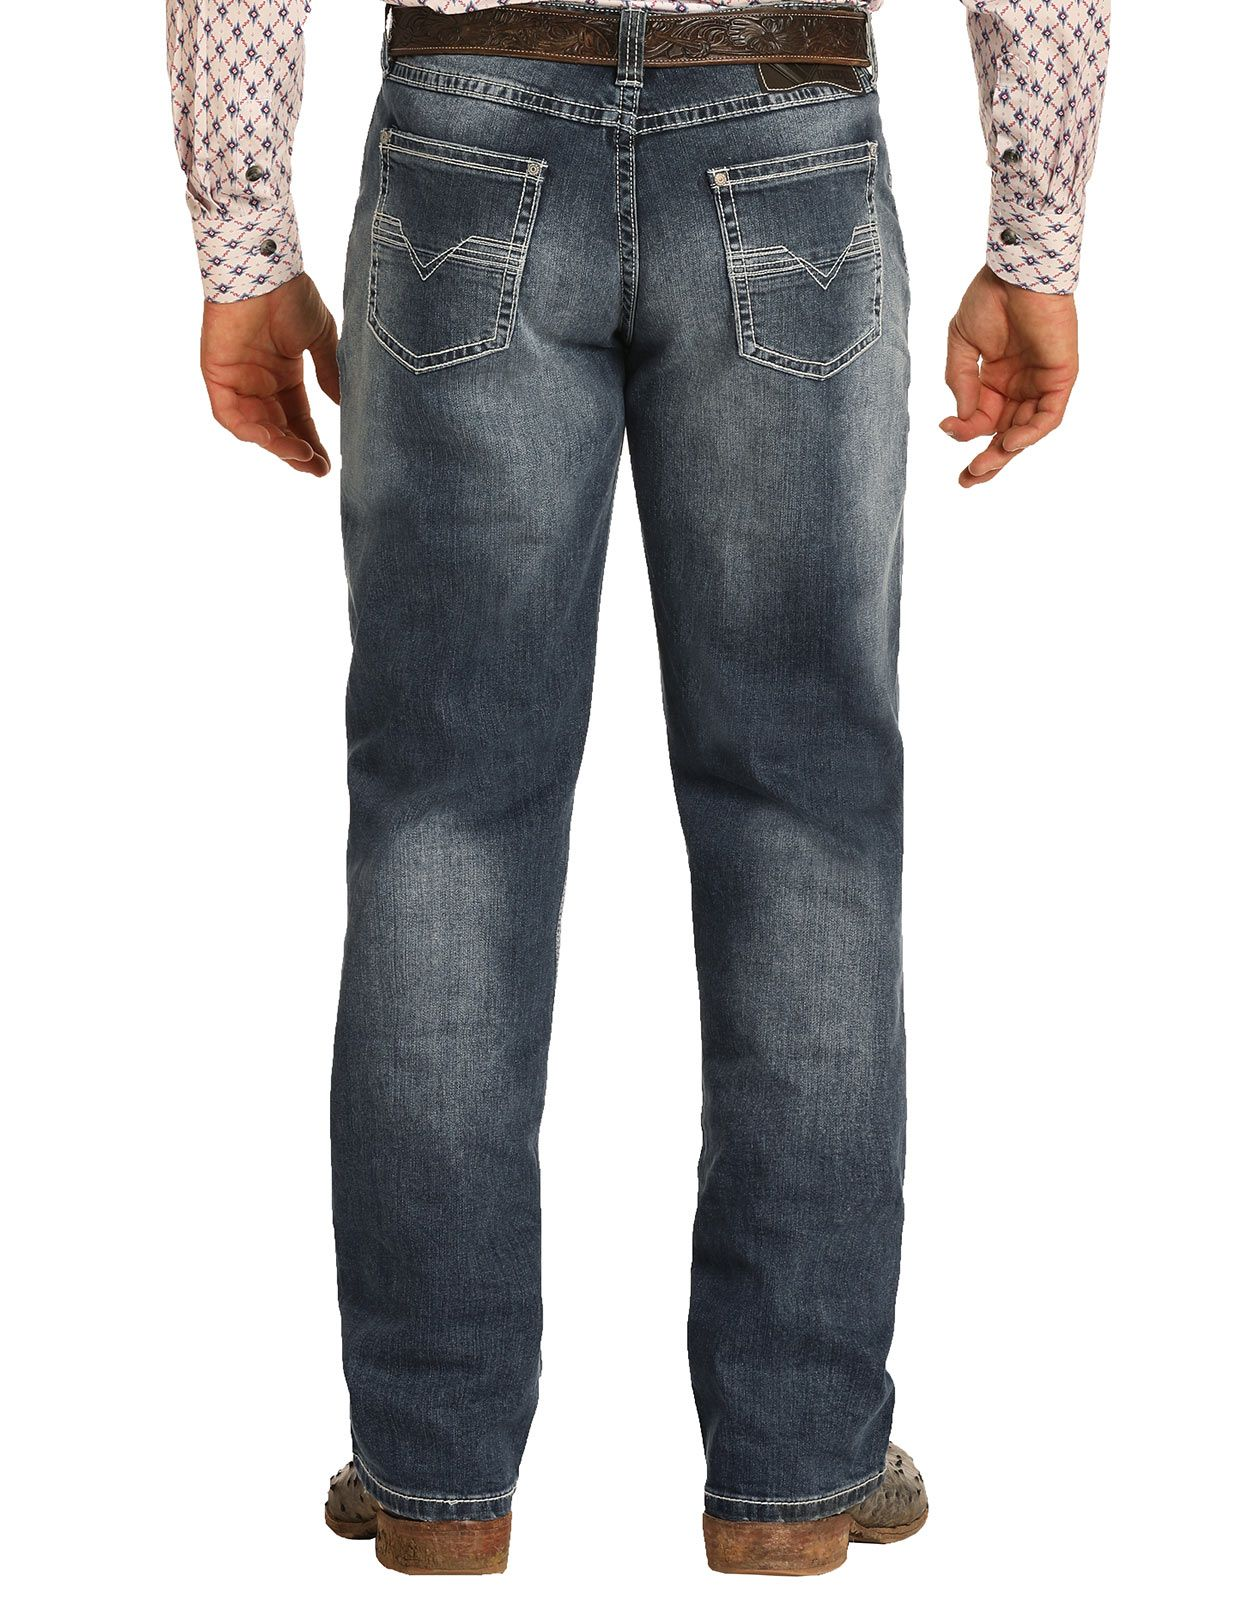 Tuf Cooper Men's Reflex Competition Fit Mid Rise Relaxed Fit Straight Leg Jeans - Medium Vintage (Closeout)